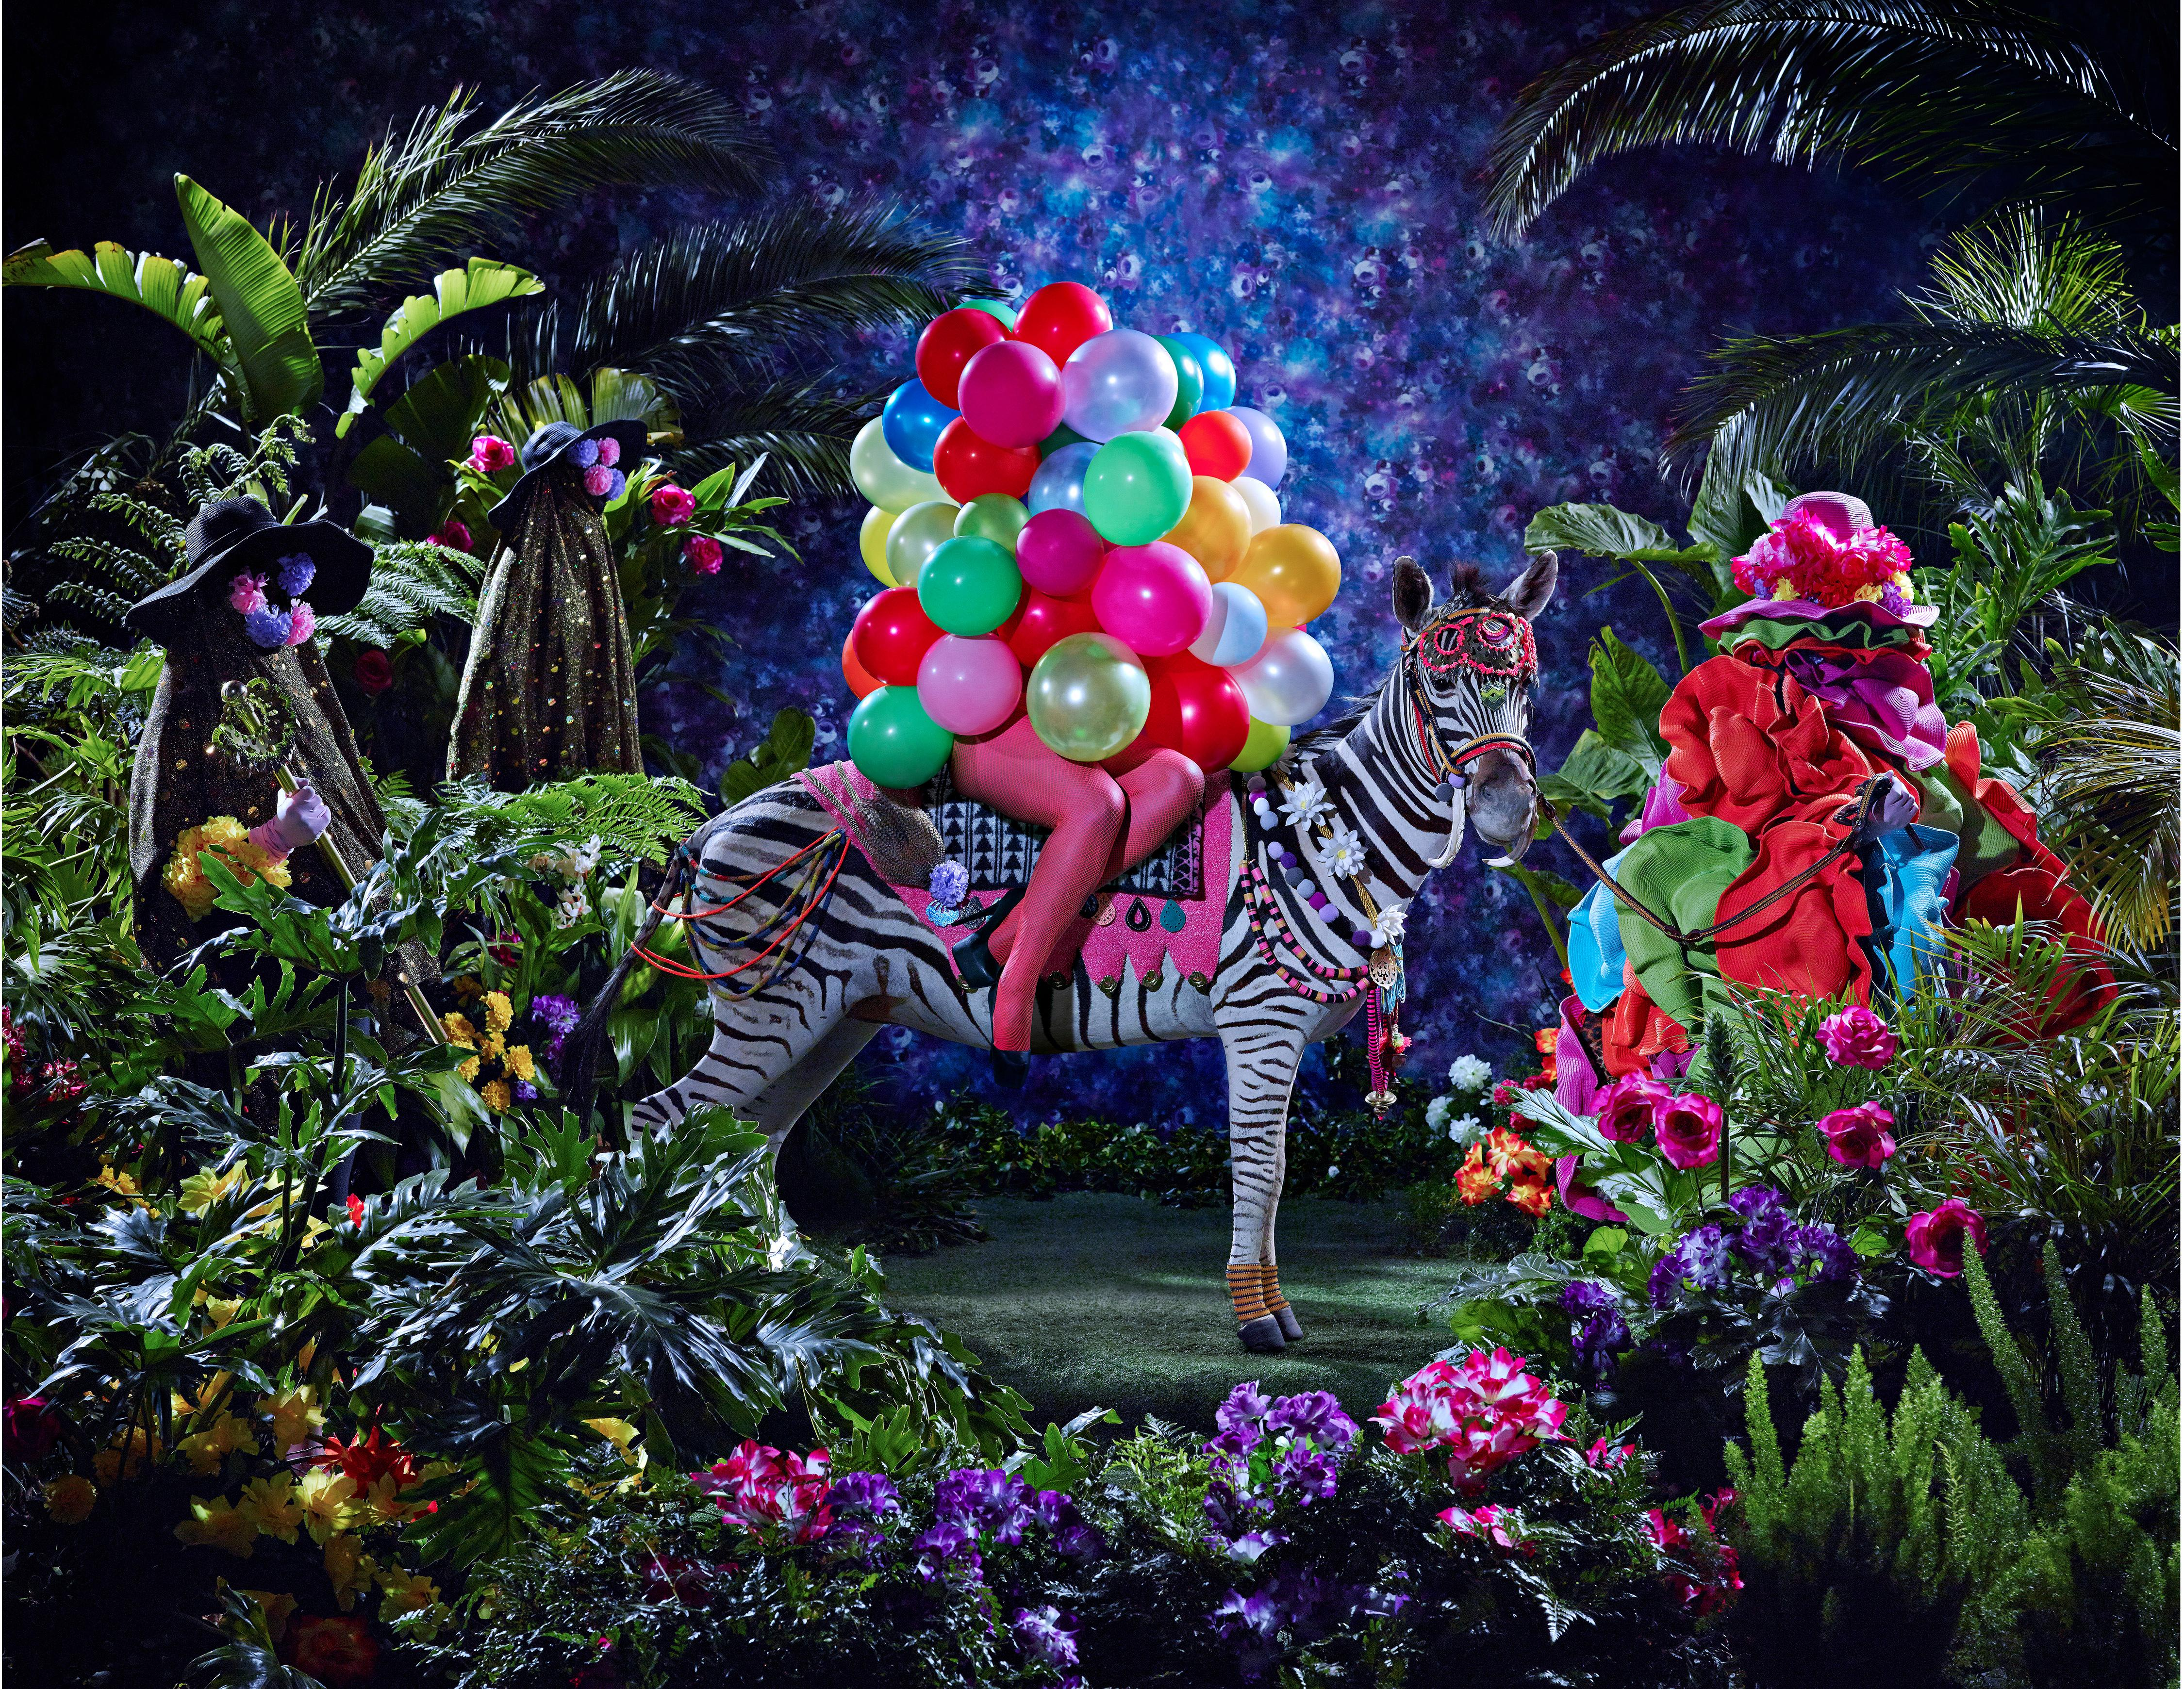 Athi-Patra Ruga's best photograph: a queer black fantasia with added zebras